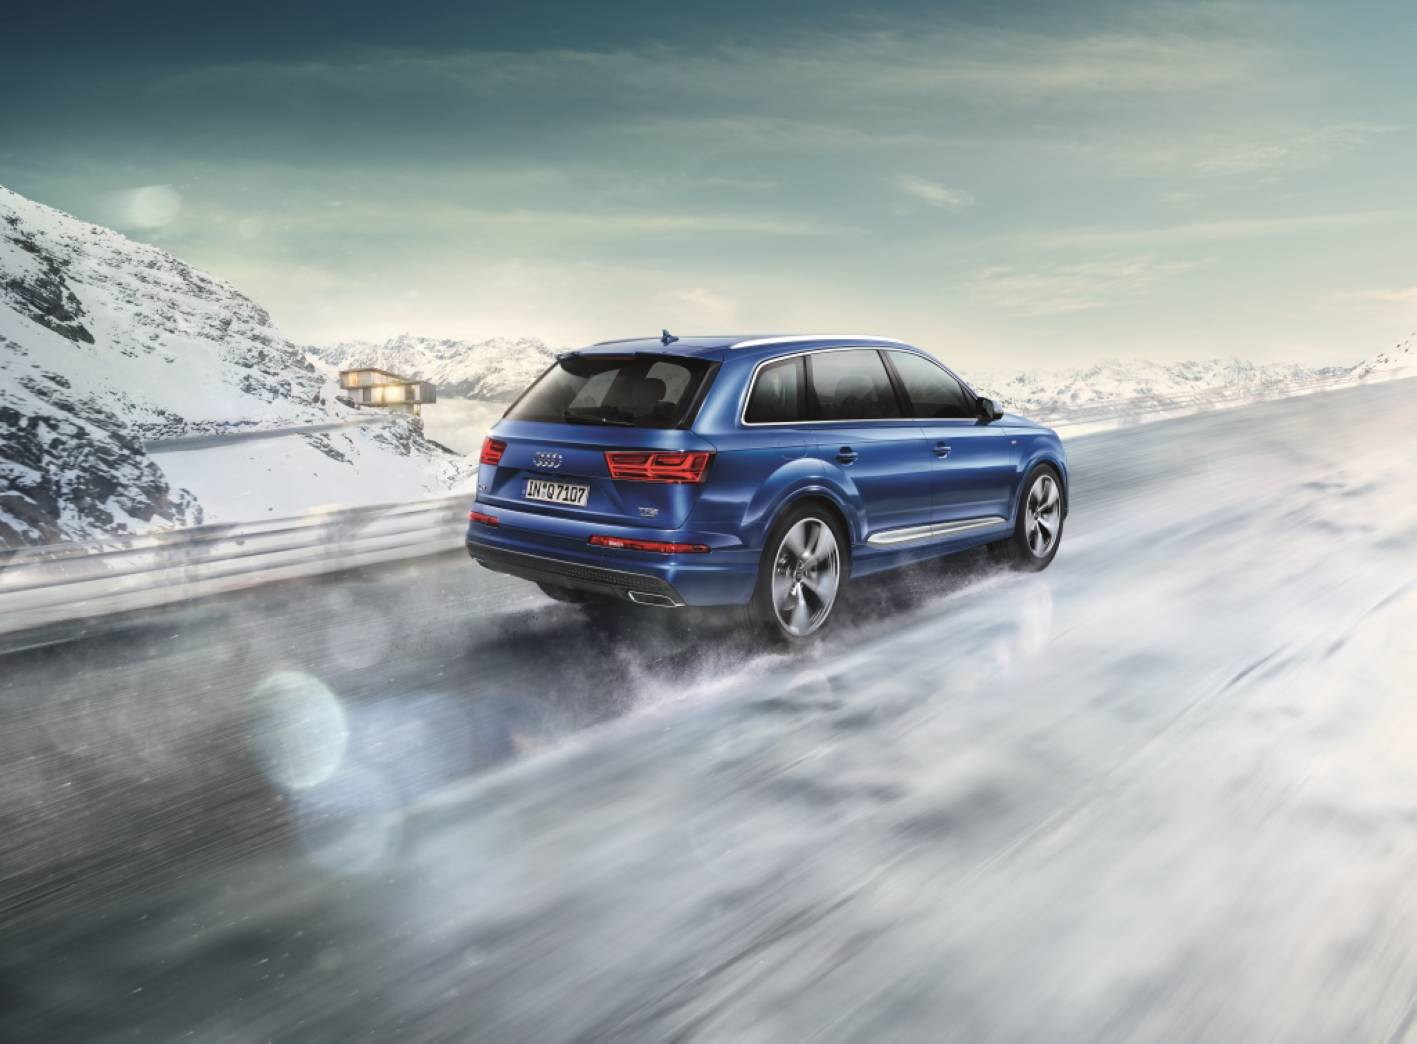 news audi launches snow driving at mt hotham. Black Bedroom Furniture Sets. Home Design Ideas